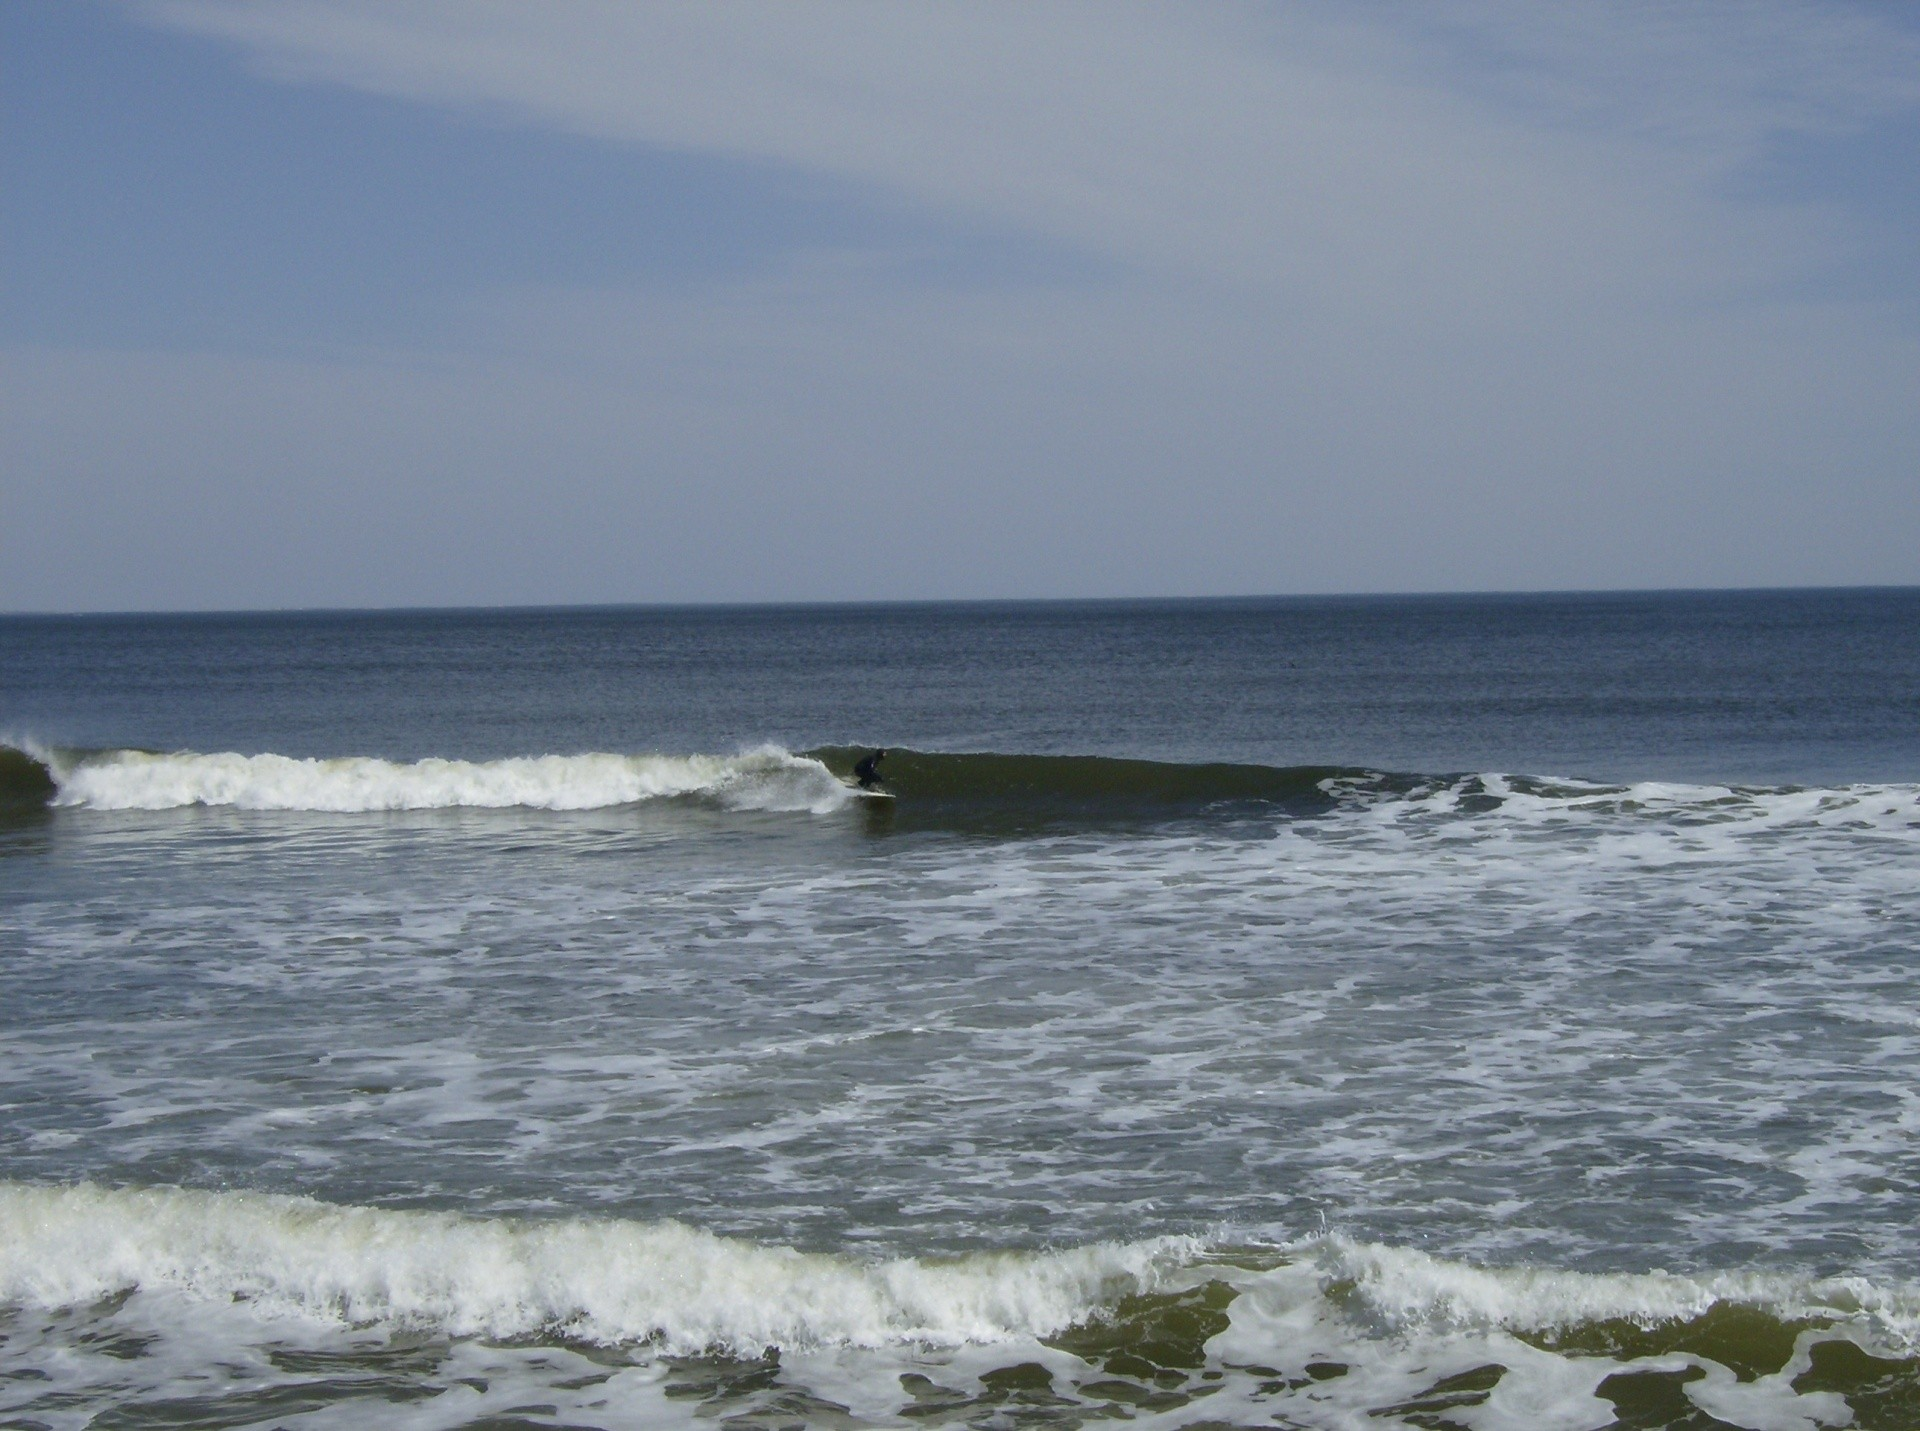 n.e. surfer's photo of The Wall